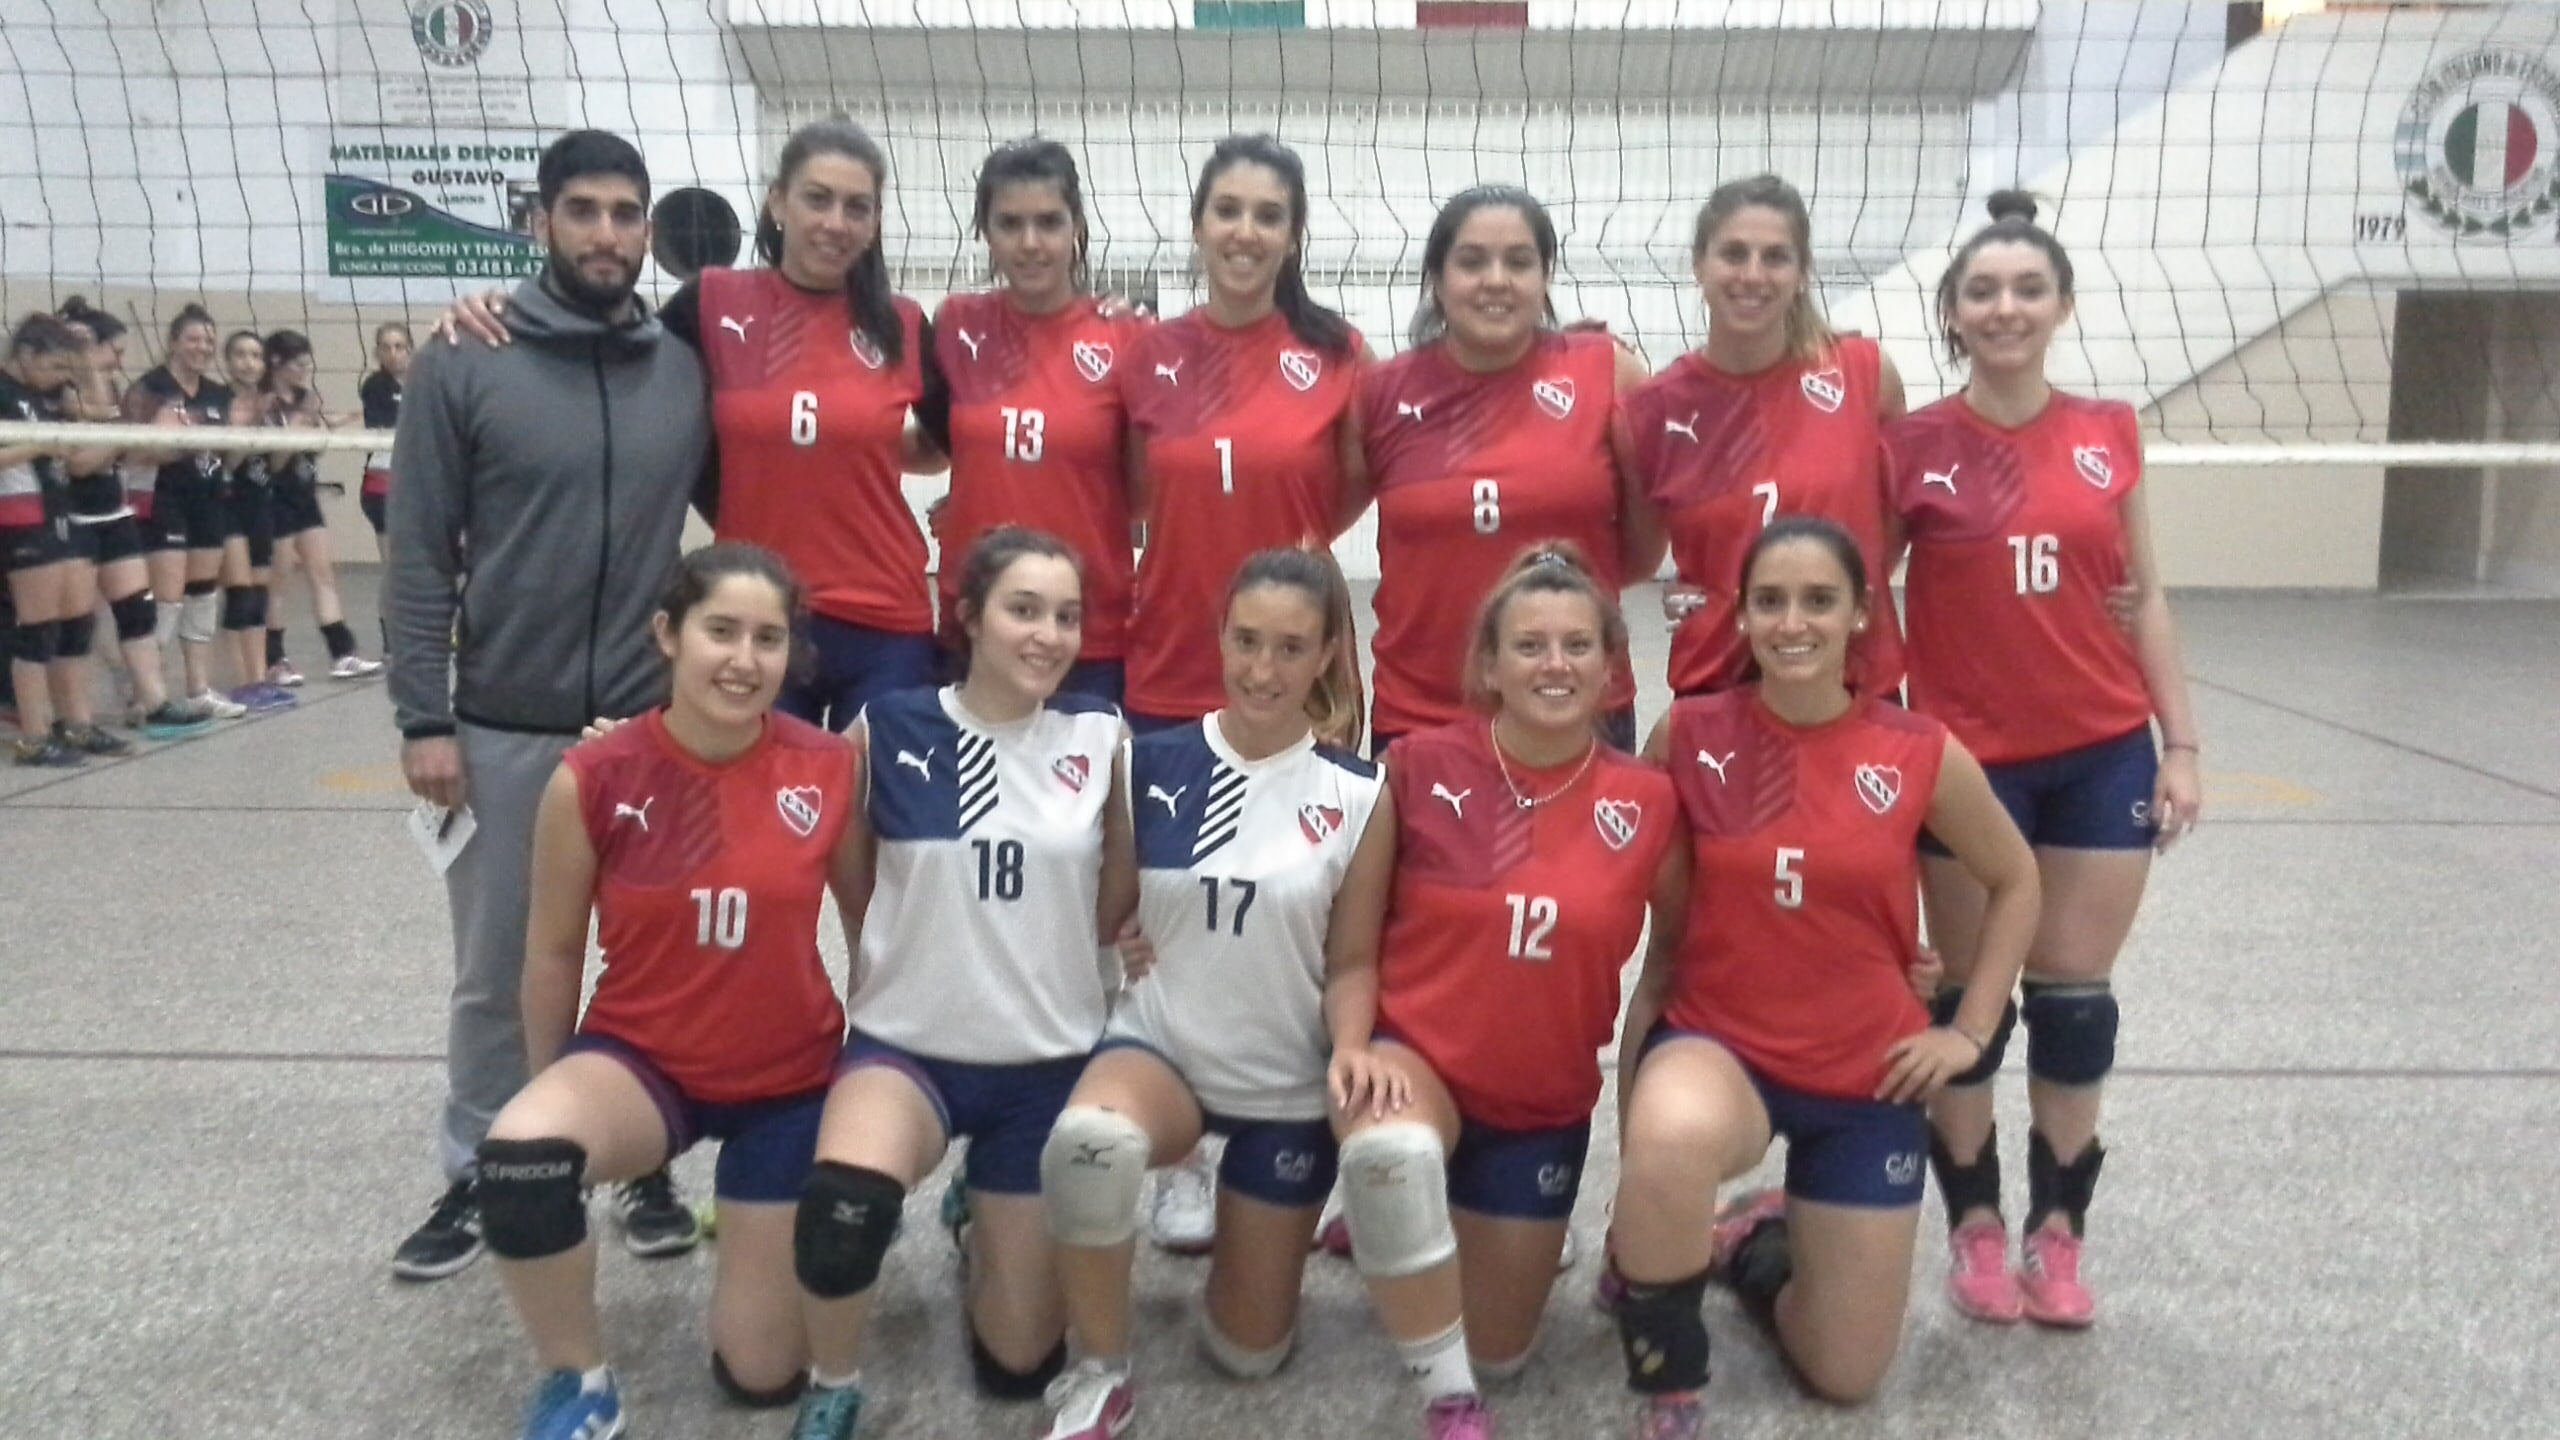 Equipo de Independiente de Avellaneda